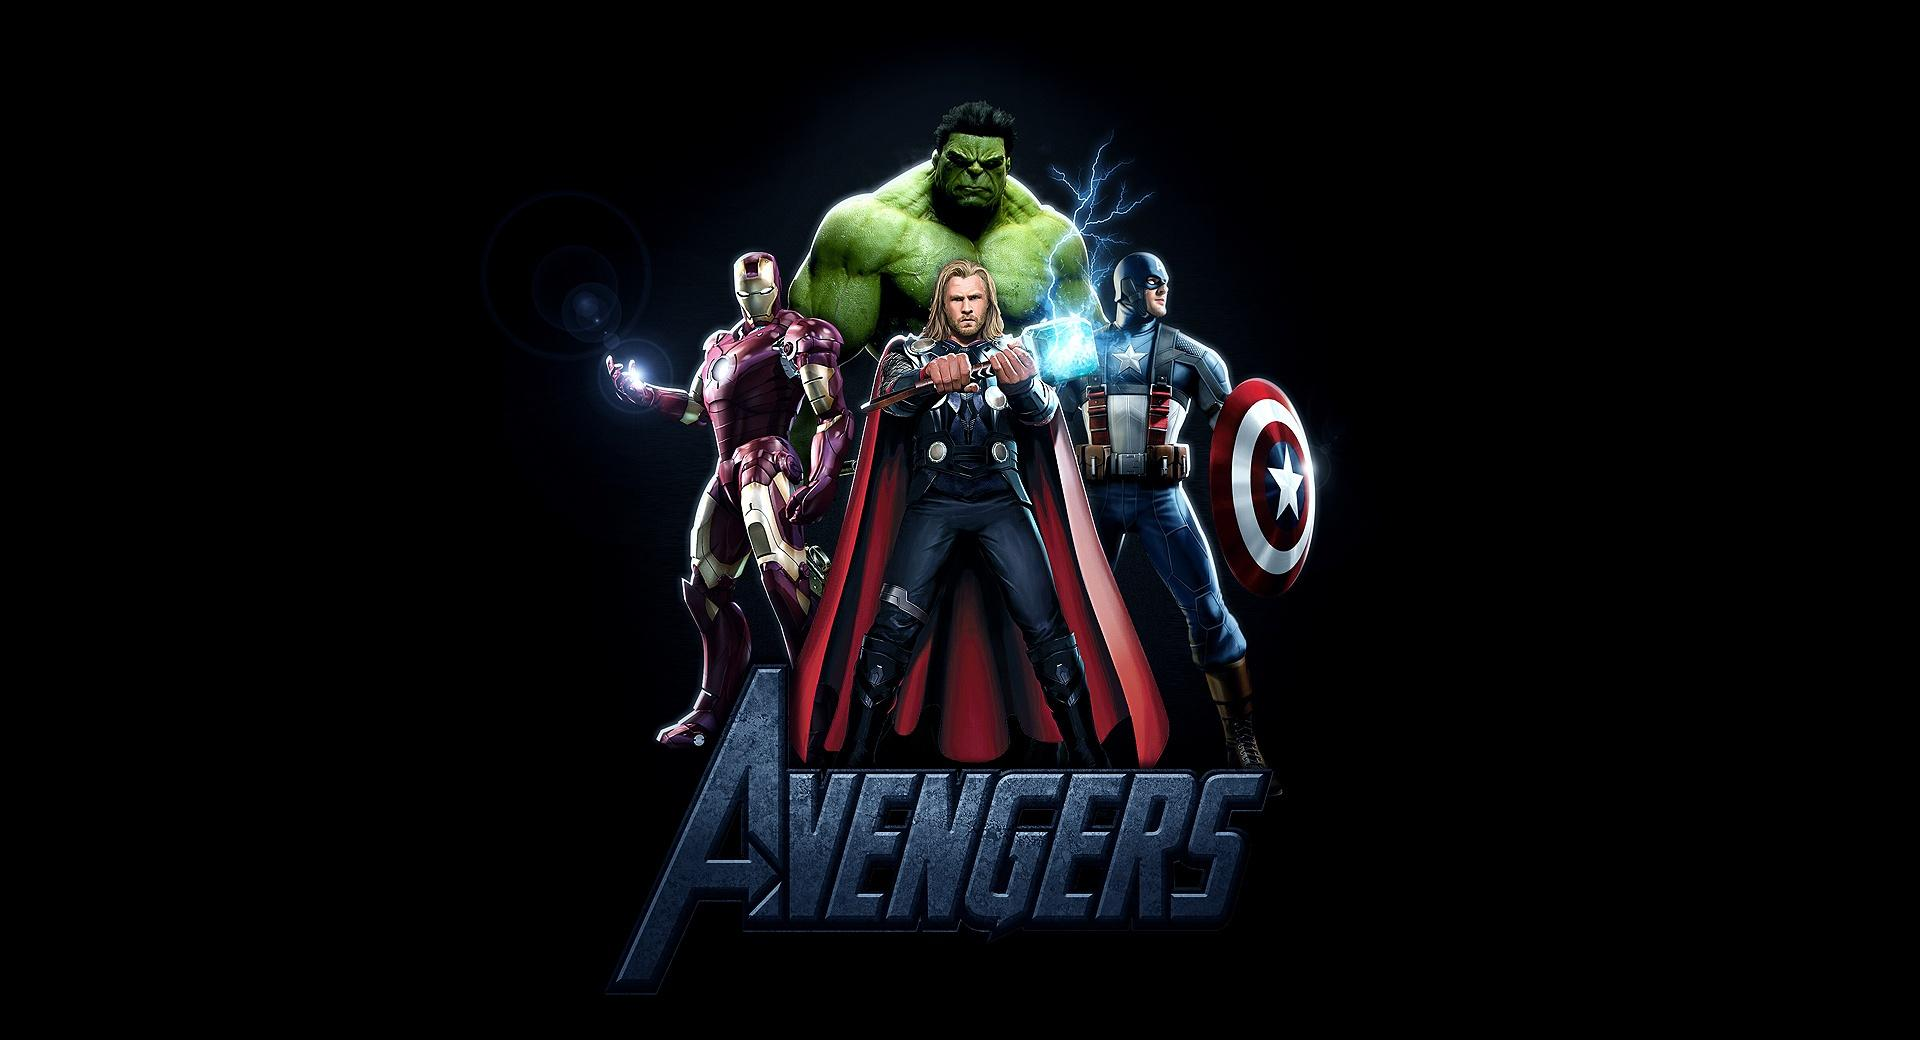 The Avengers Movie 2012 wallpapers HD quality